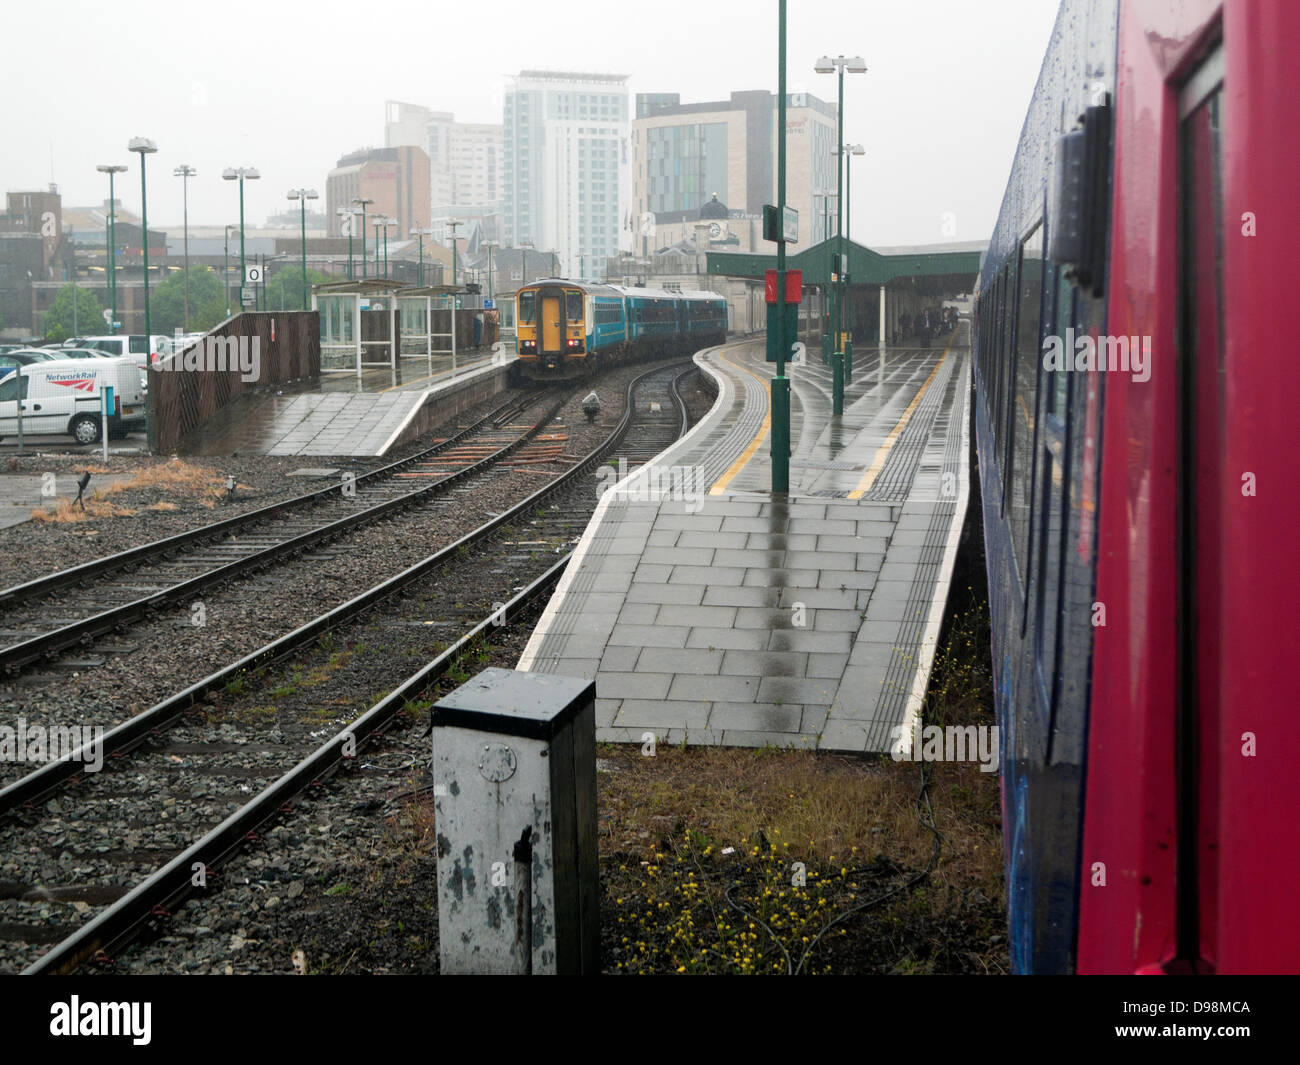 View of the rail tracks train track and side of a Great Western train approaching railway station and city buildings - Stock Image